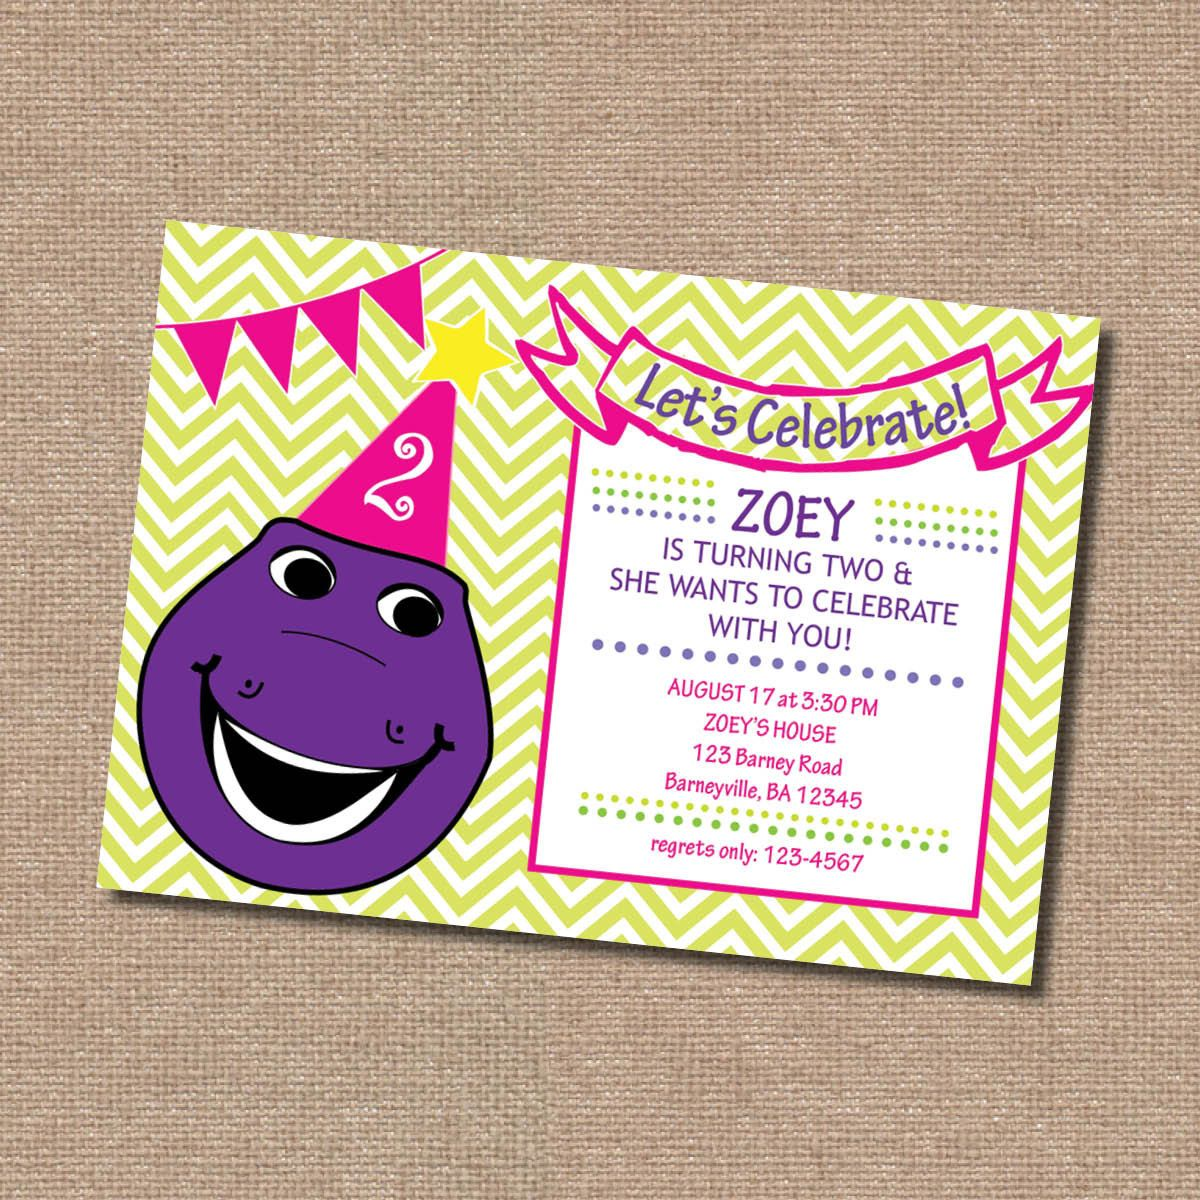 Barney birthday invitation party ideas pinterest barney barney birthday invitation monicamarmolfo Images